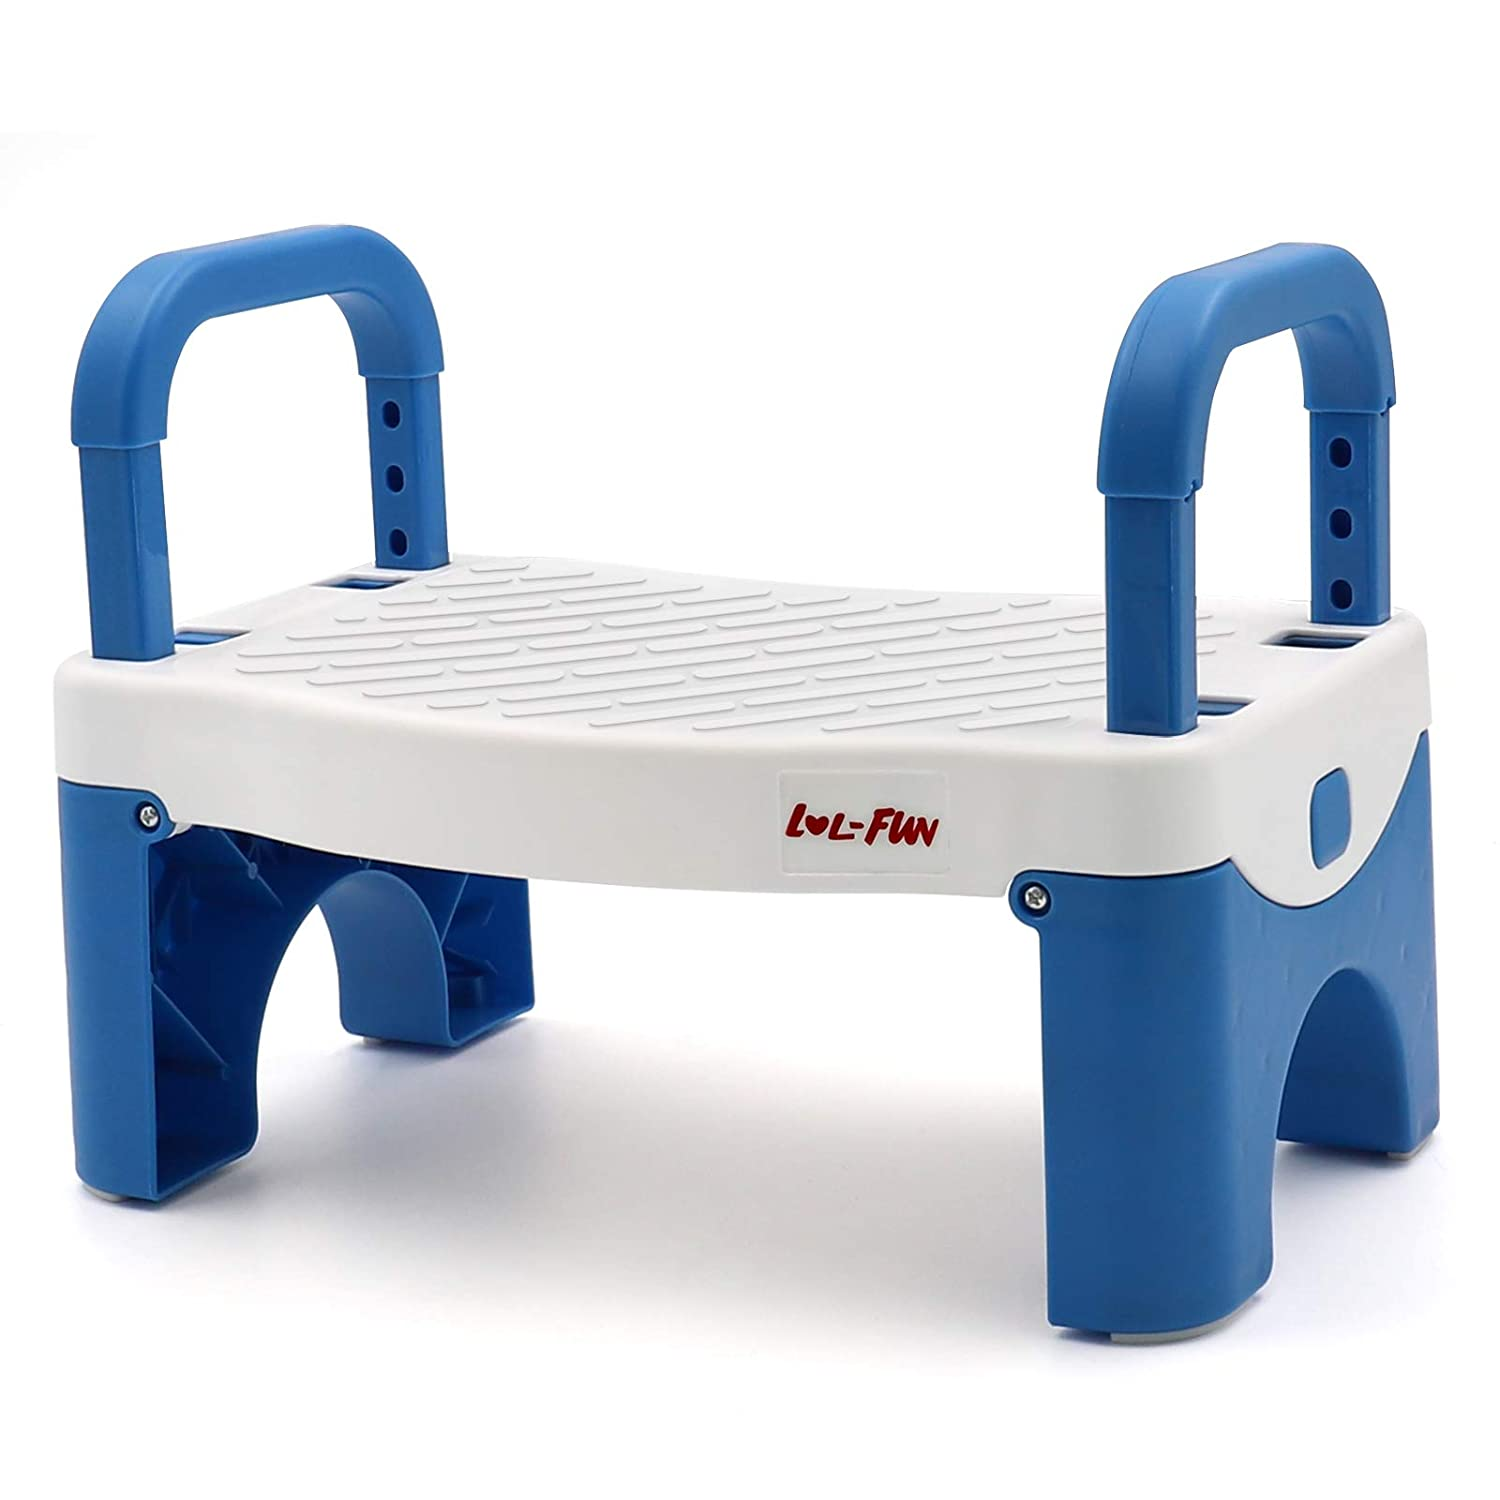 LOL-FUN Folding Step Stool for Kids,Toddler Stool for Bathroom Sink,Child Step Stool for Boys and Girls -Blue